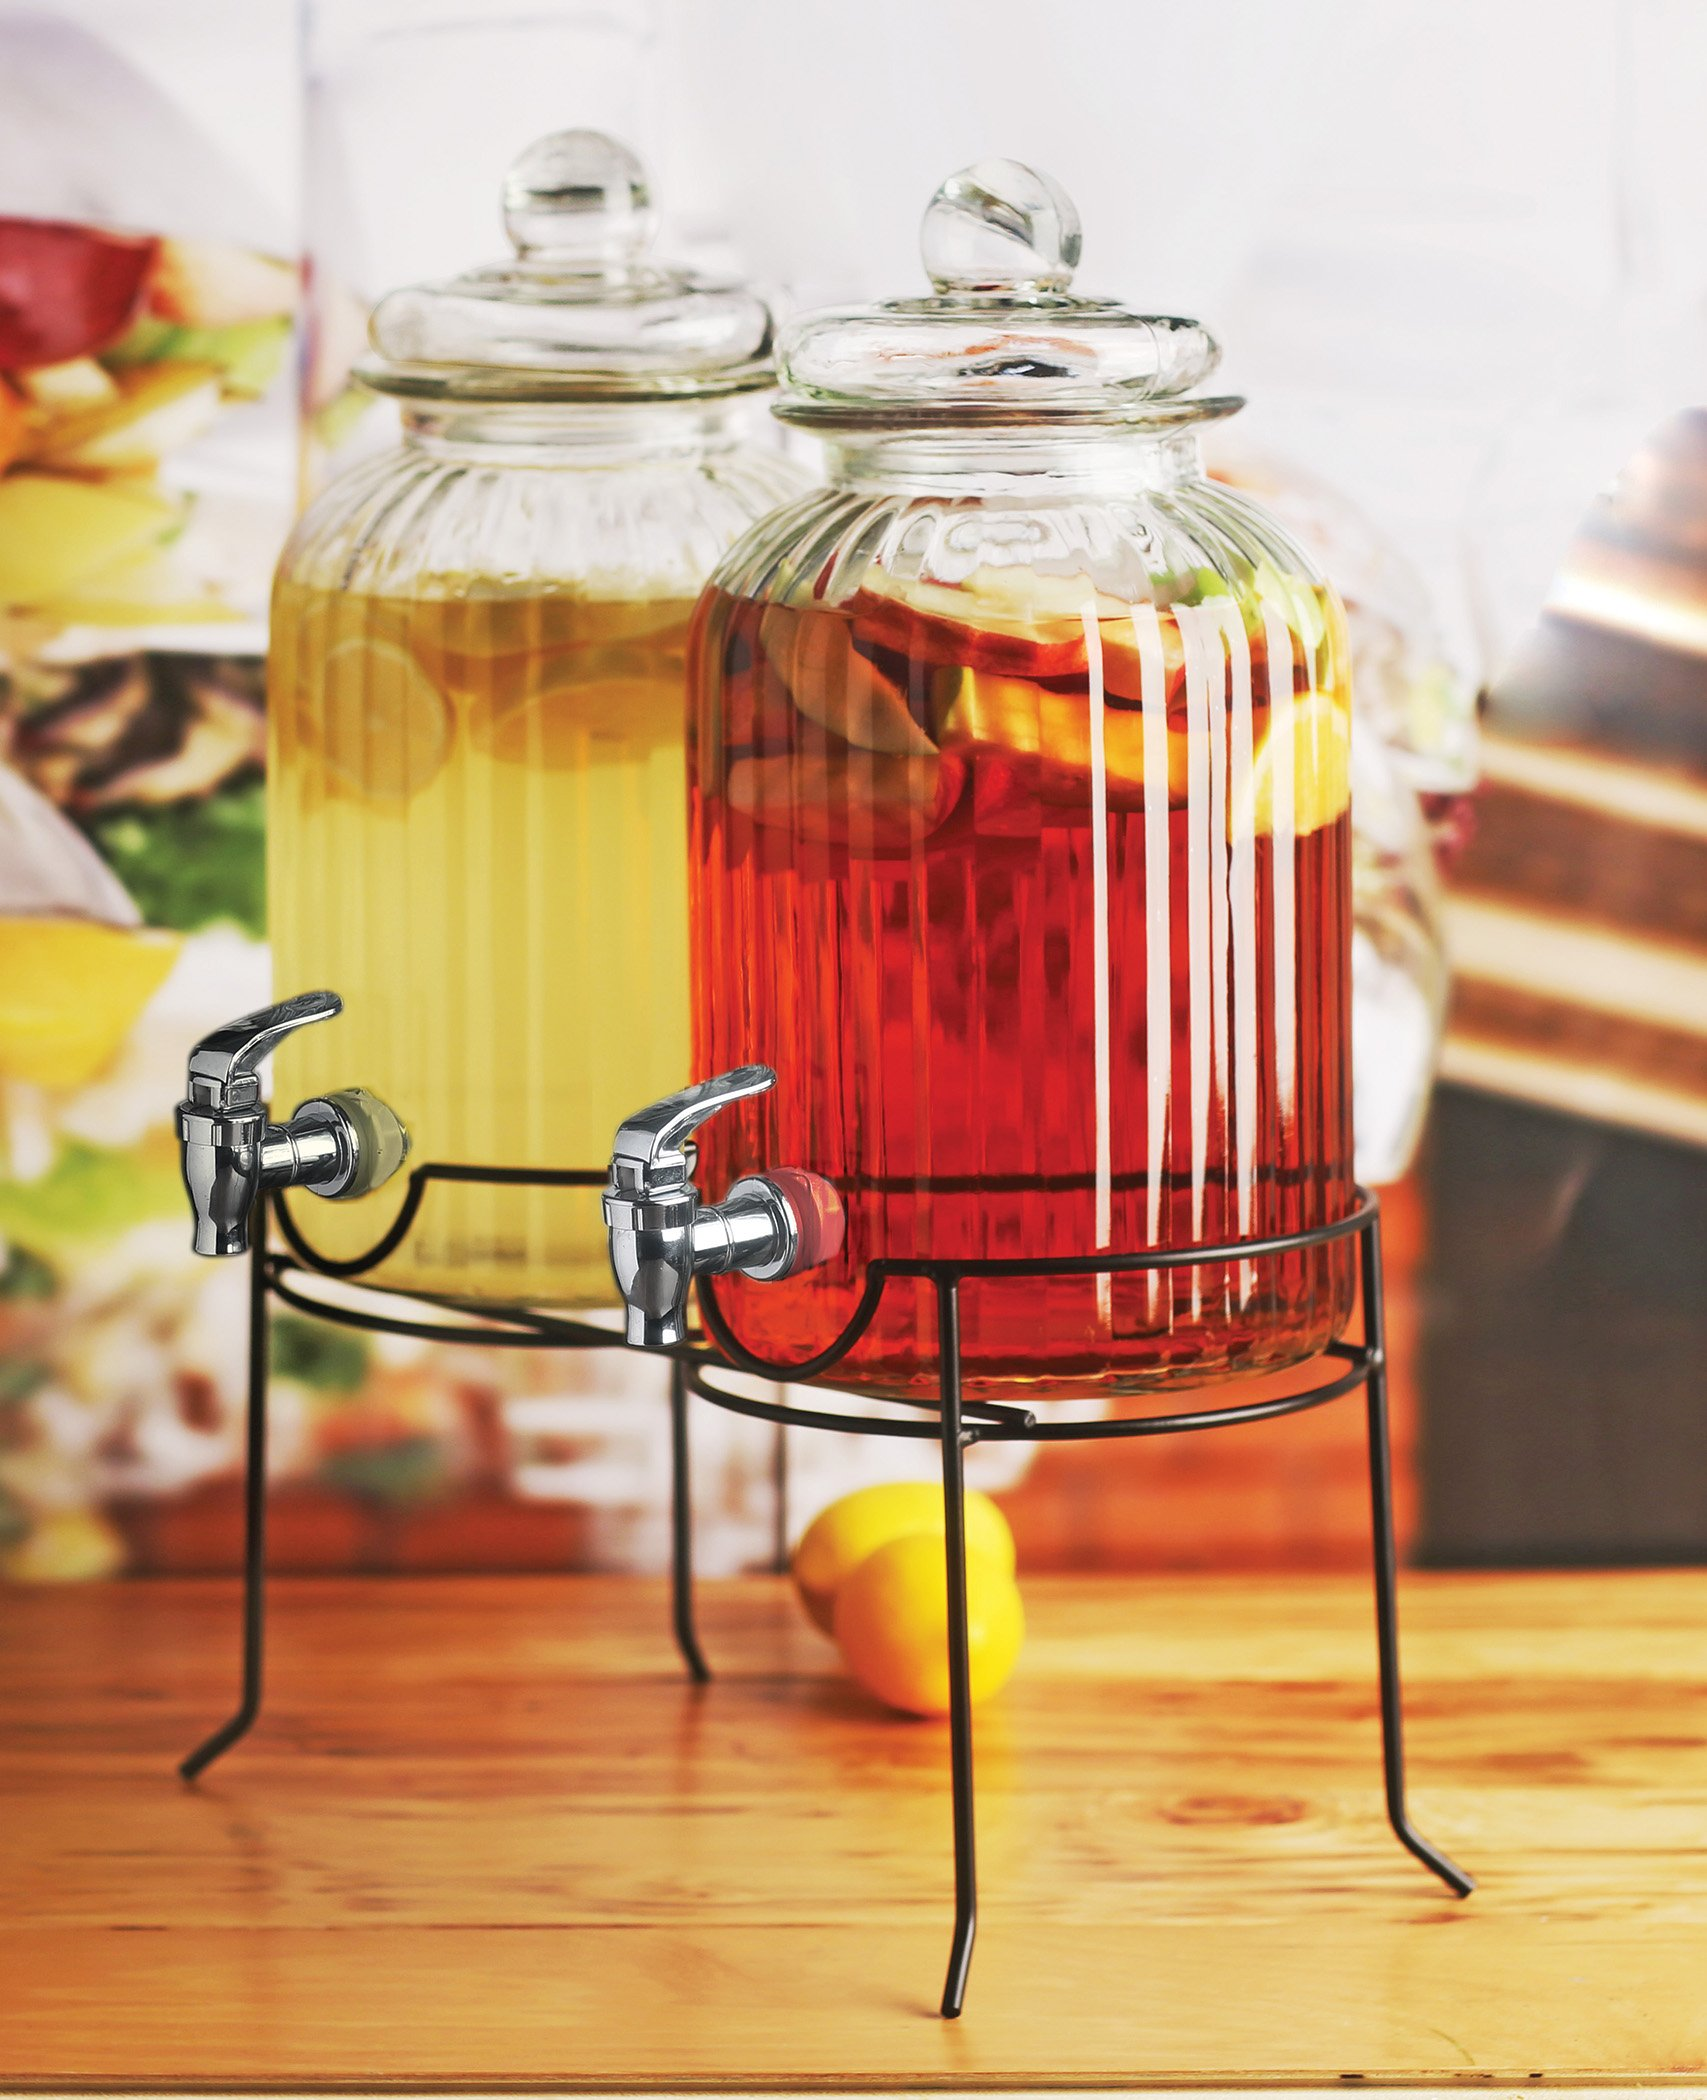 Circleware 66927 Sun Tea Mason Jar Double Glass Beverage Dispensers with Metal Stand and Lid Entertainment Kitchen Glassware for Water, Juice, Wine, Kombucha and Cold Drinks 1.3 Gallon Each Ridge by Circleware (Image #2)